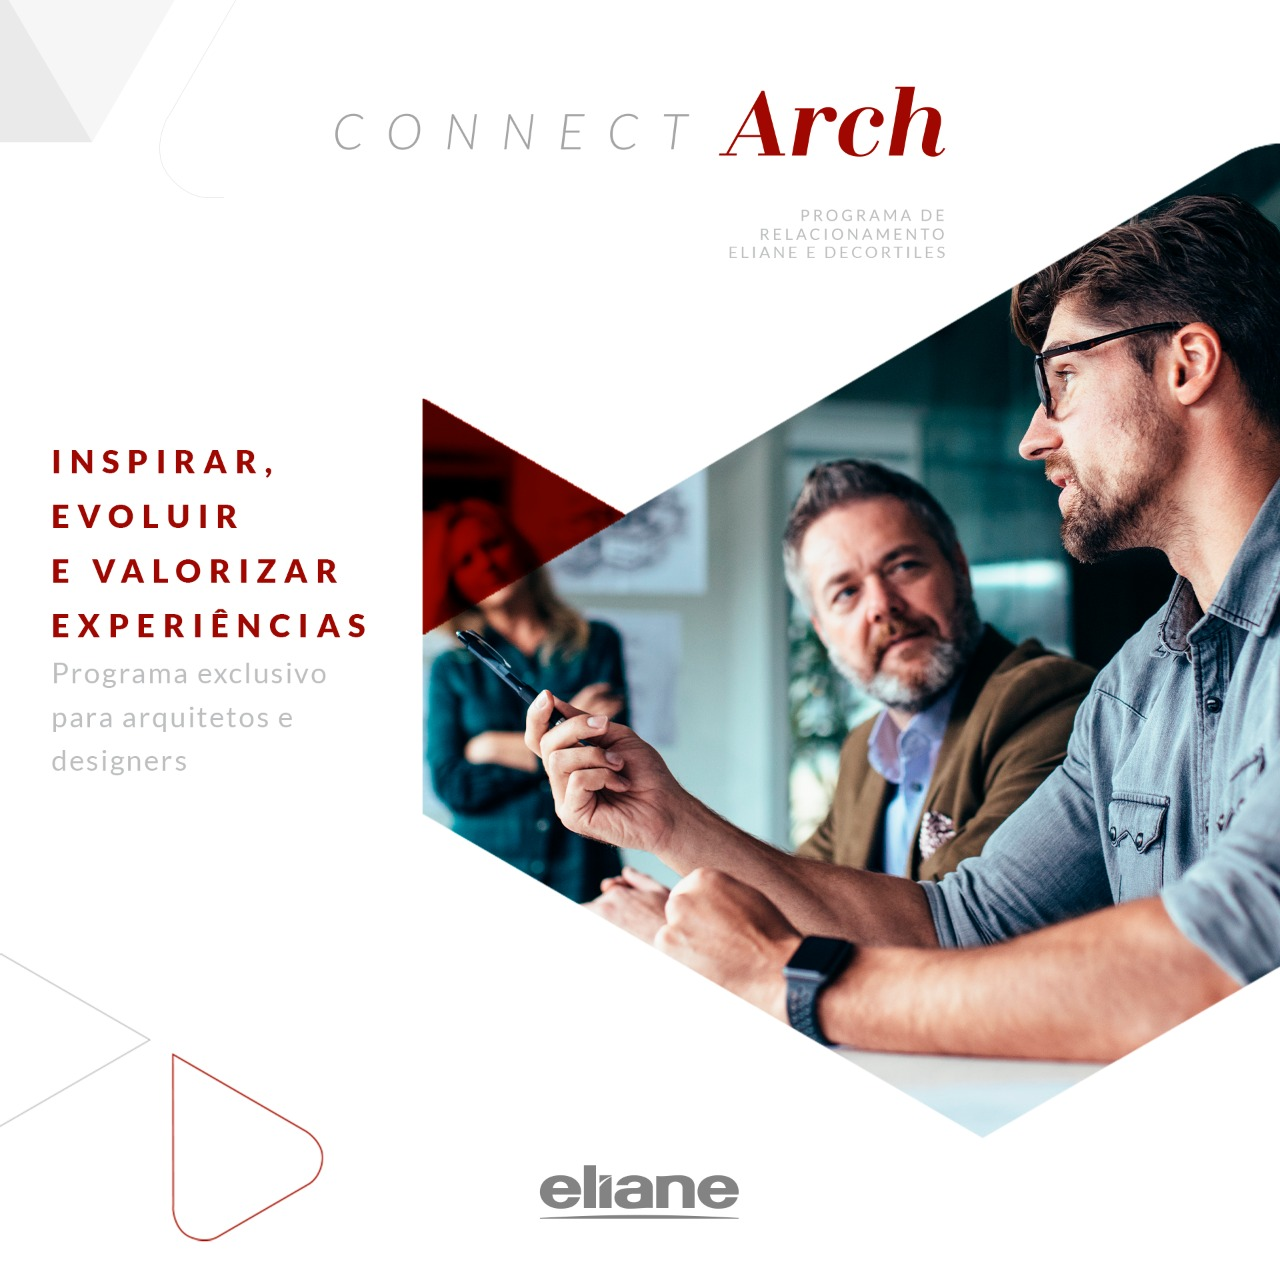 ConnectArch: Eliane relationships launches program